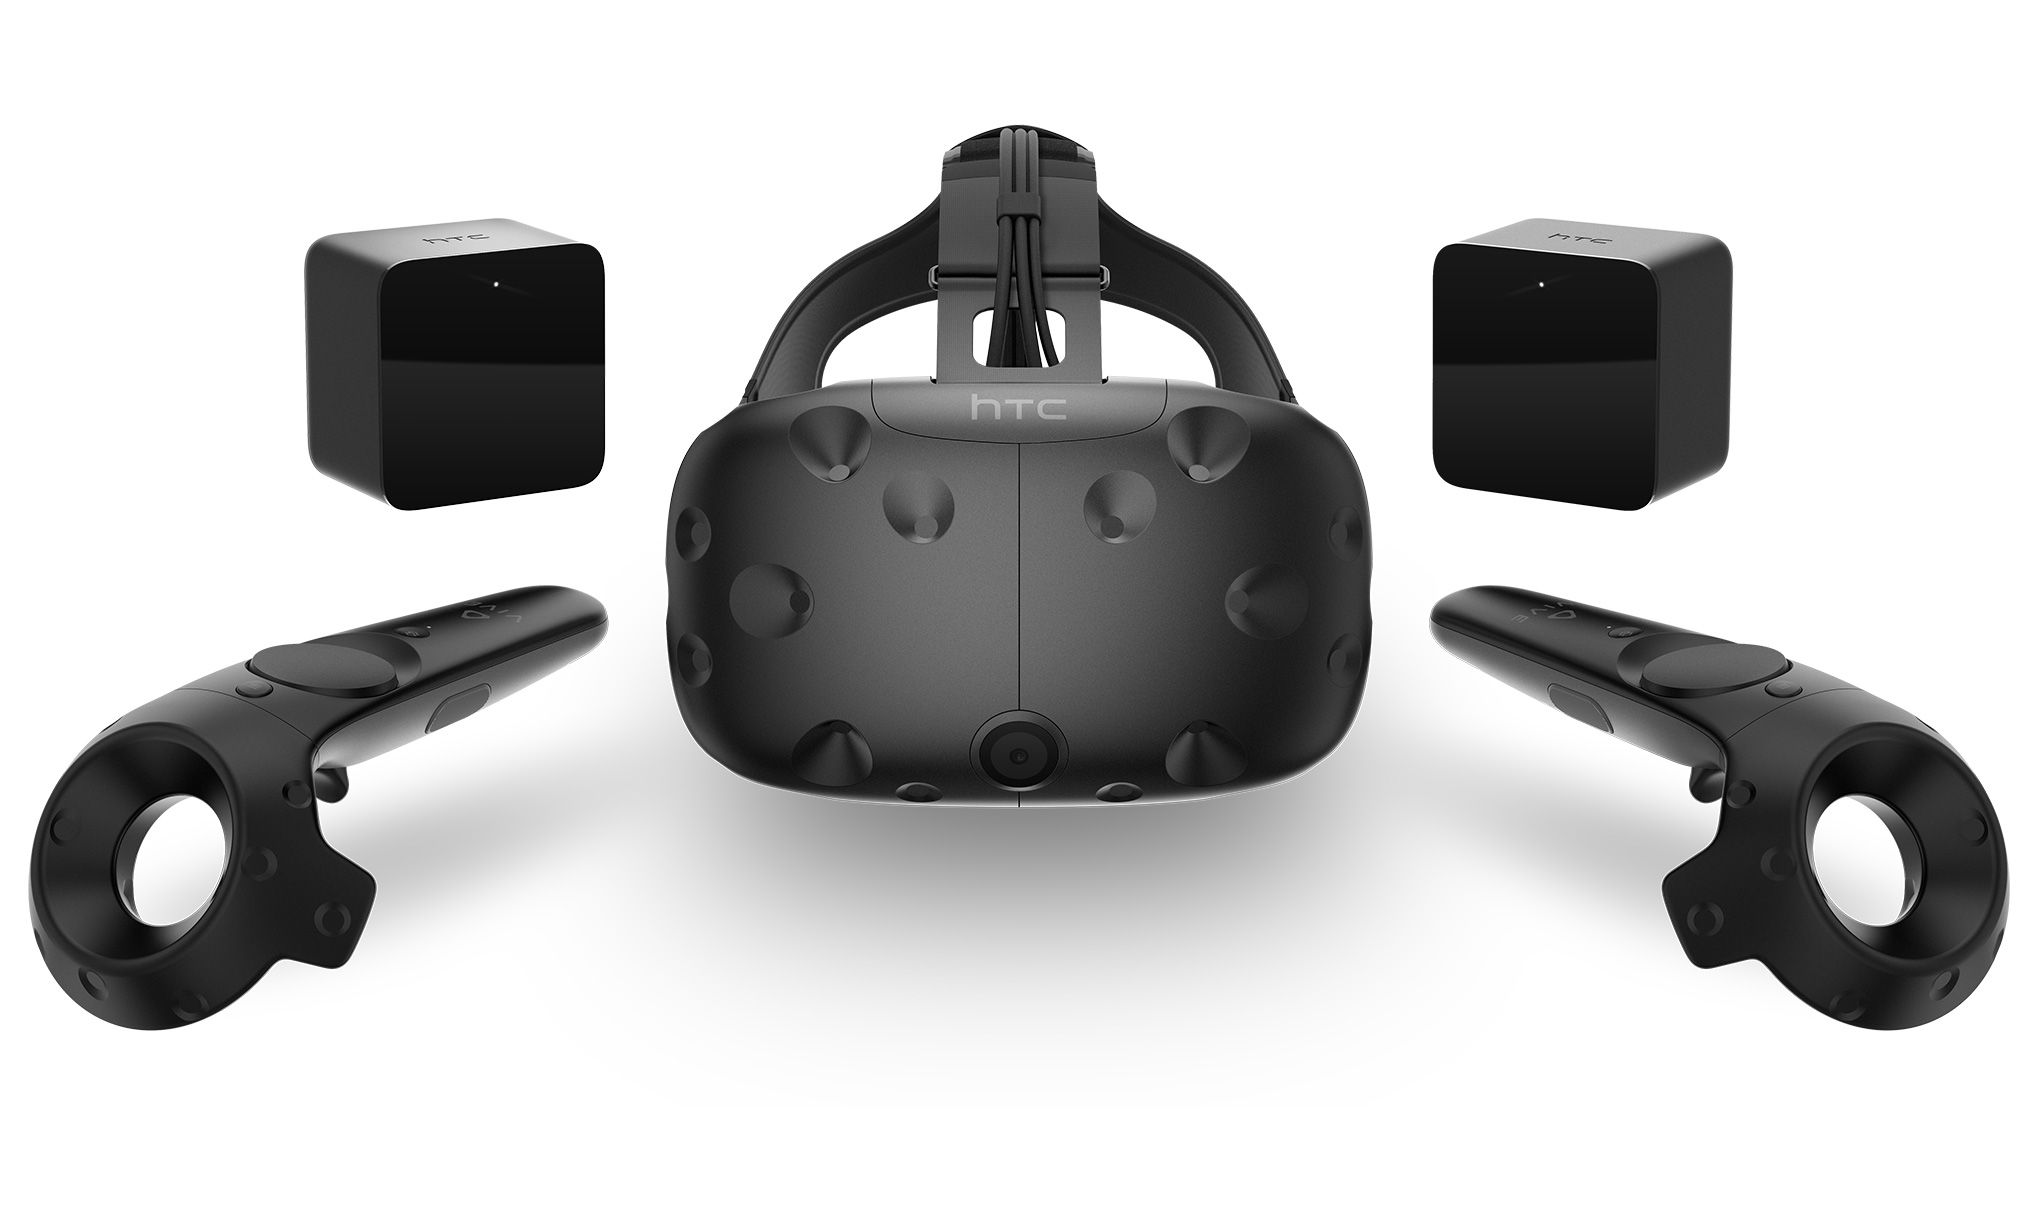 PSVR vs  HTC Vive vs  Oculus Rift vs  Gear VR: Which VR headset